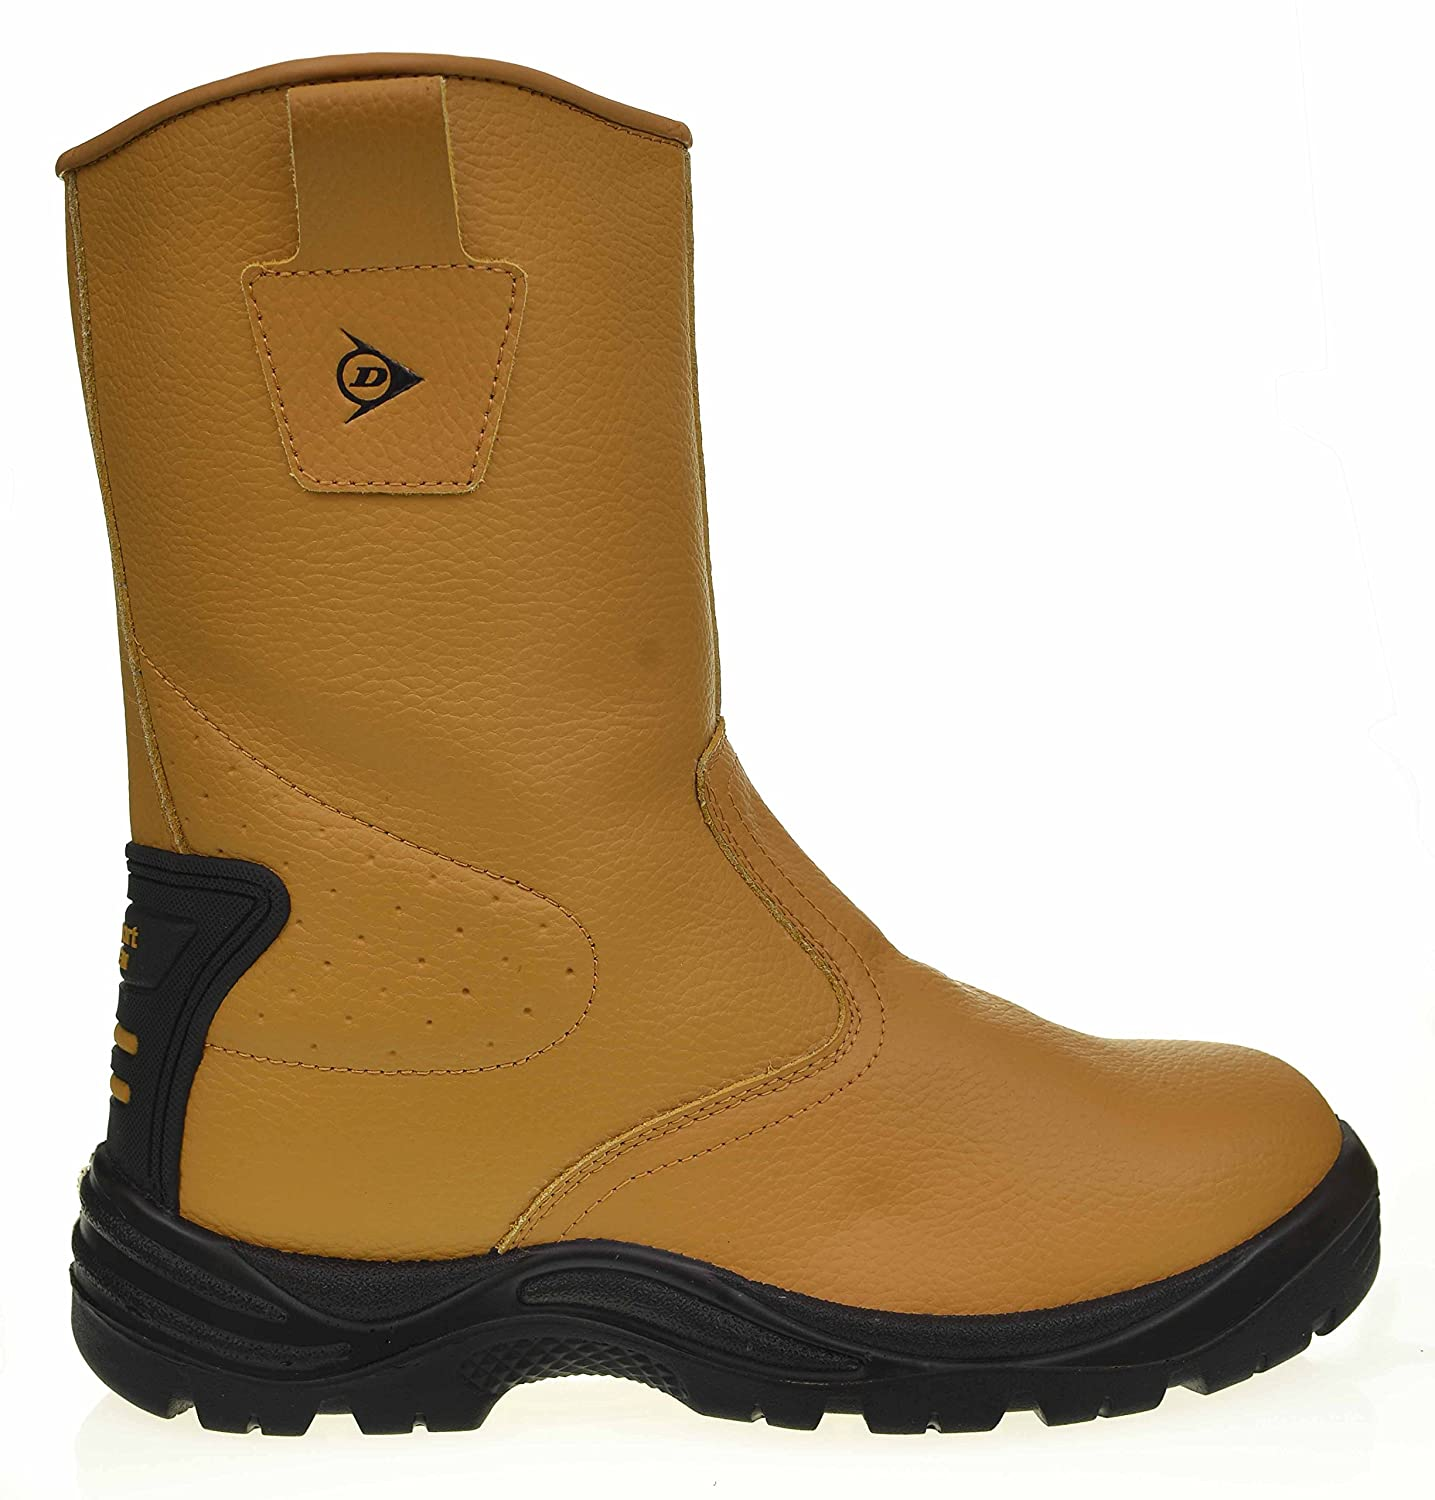 c38b3bc8124 Dunlop Men's Honey Rigger Boots Support System Safety Work Boots Shoes Size  7 8 9 10 11 12